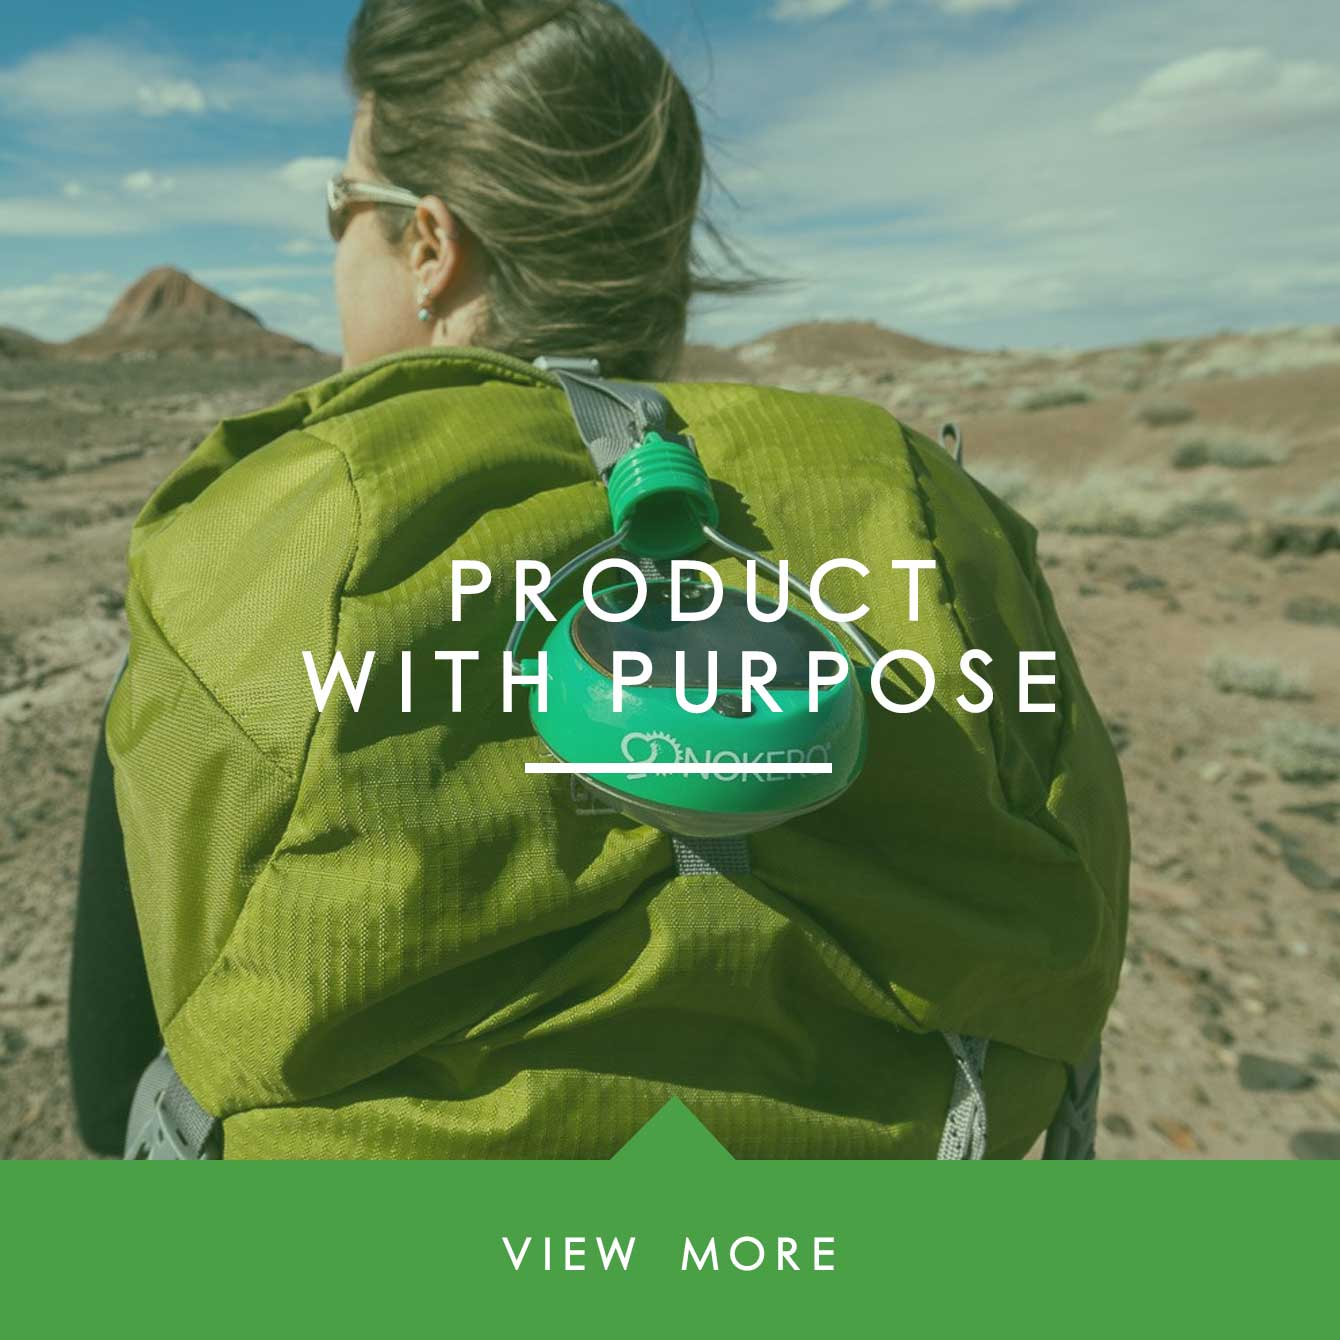 Products with Purpose